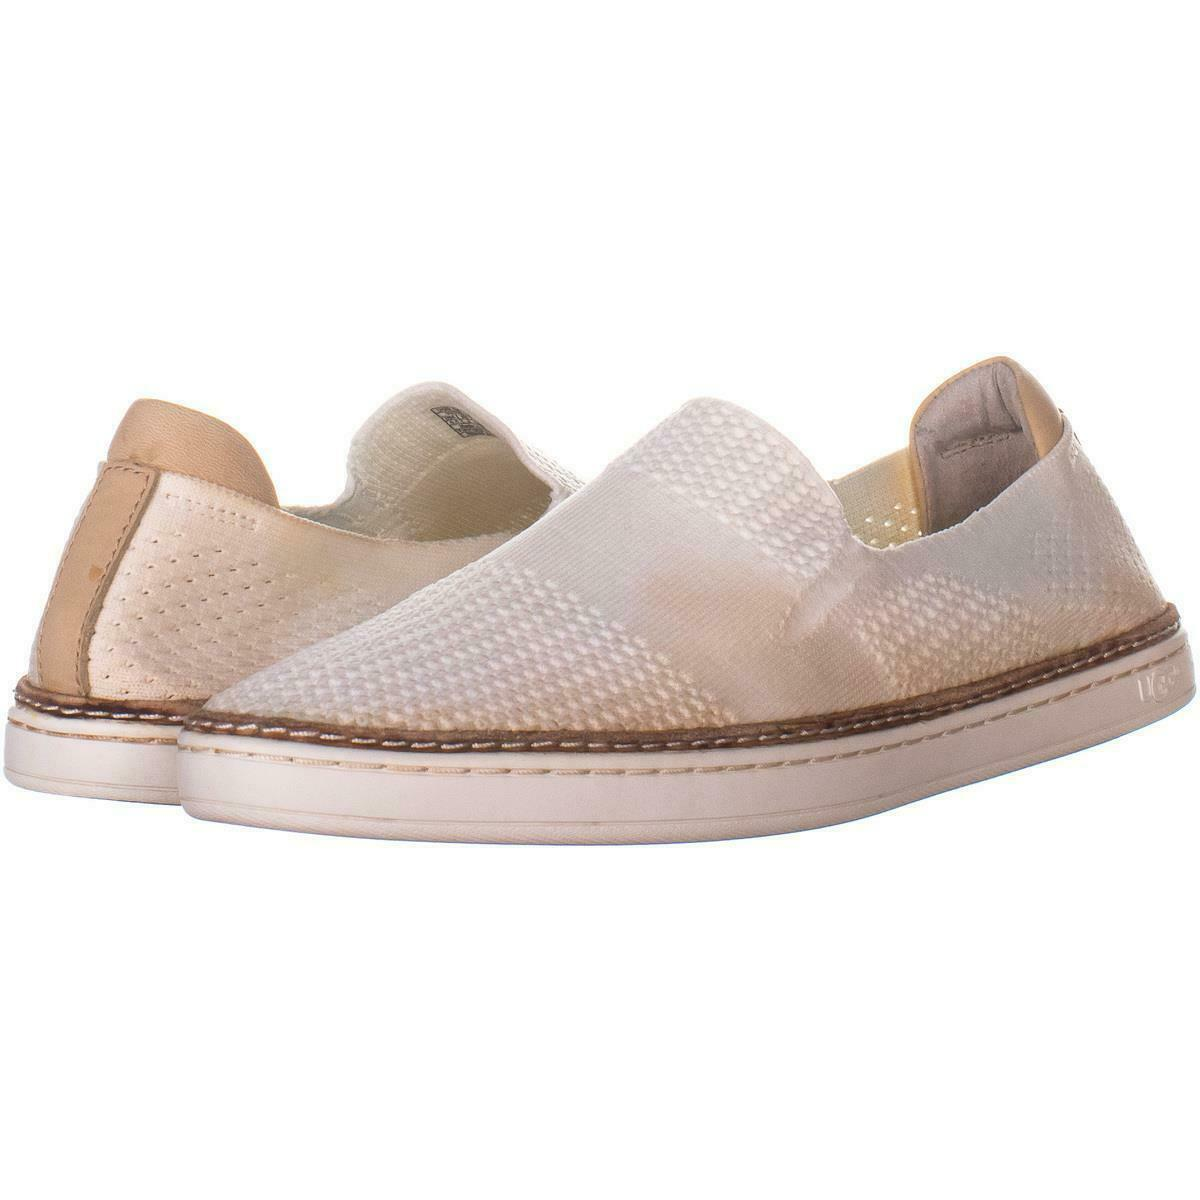 Primary image for UGG Australia Sammy Fashion Slip-On Sneakers 973, White, 9.5 US / 40.5 EU